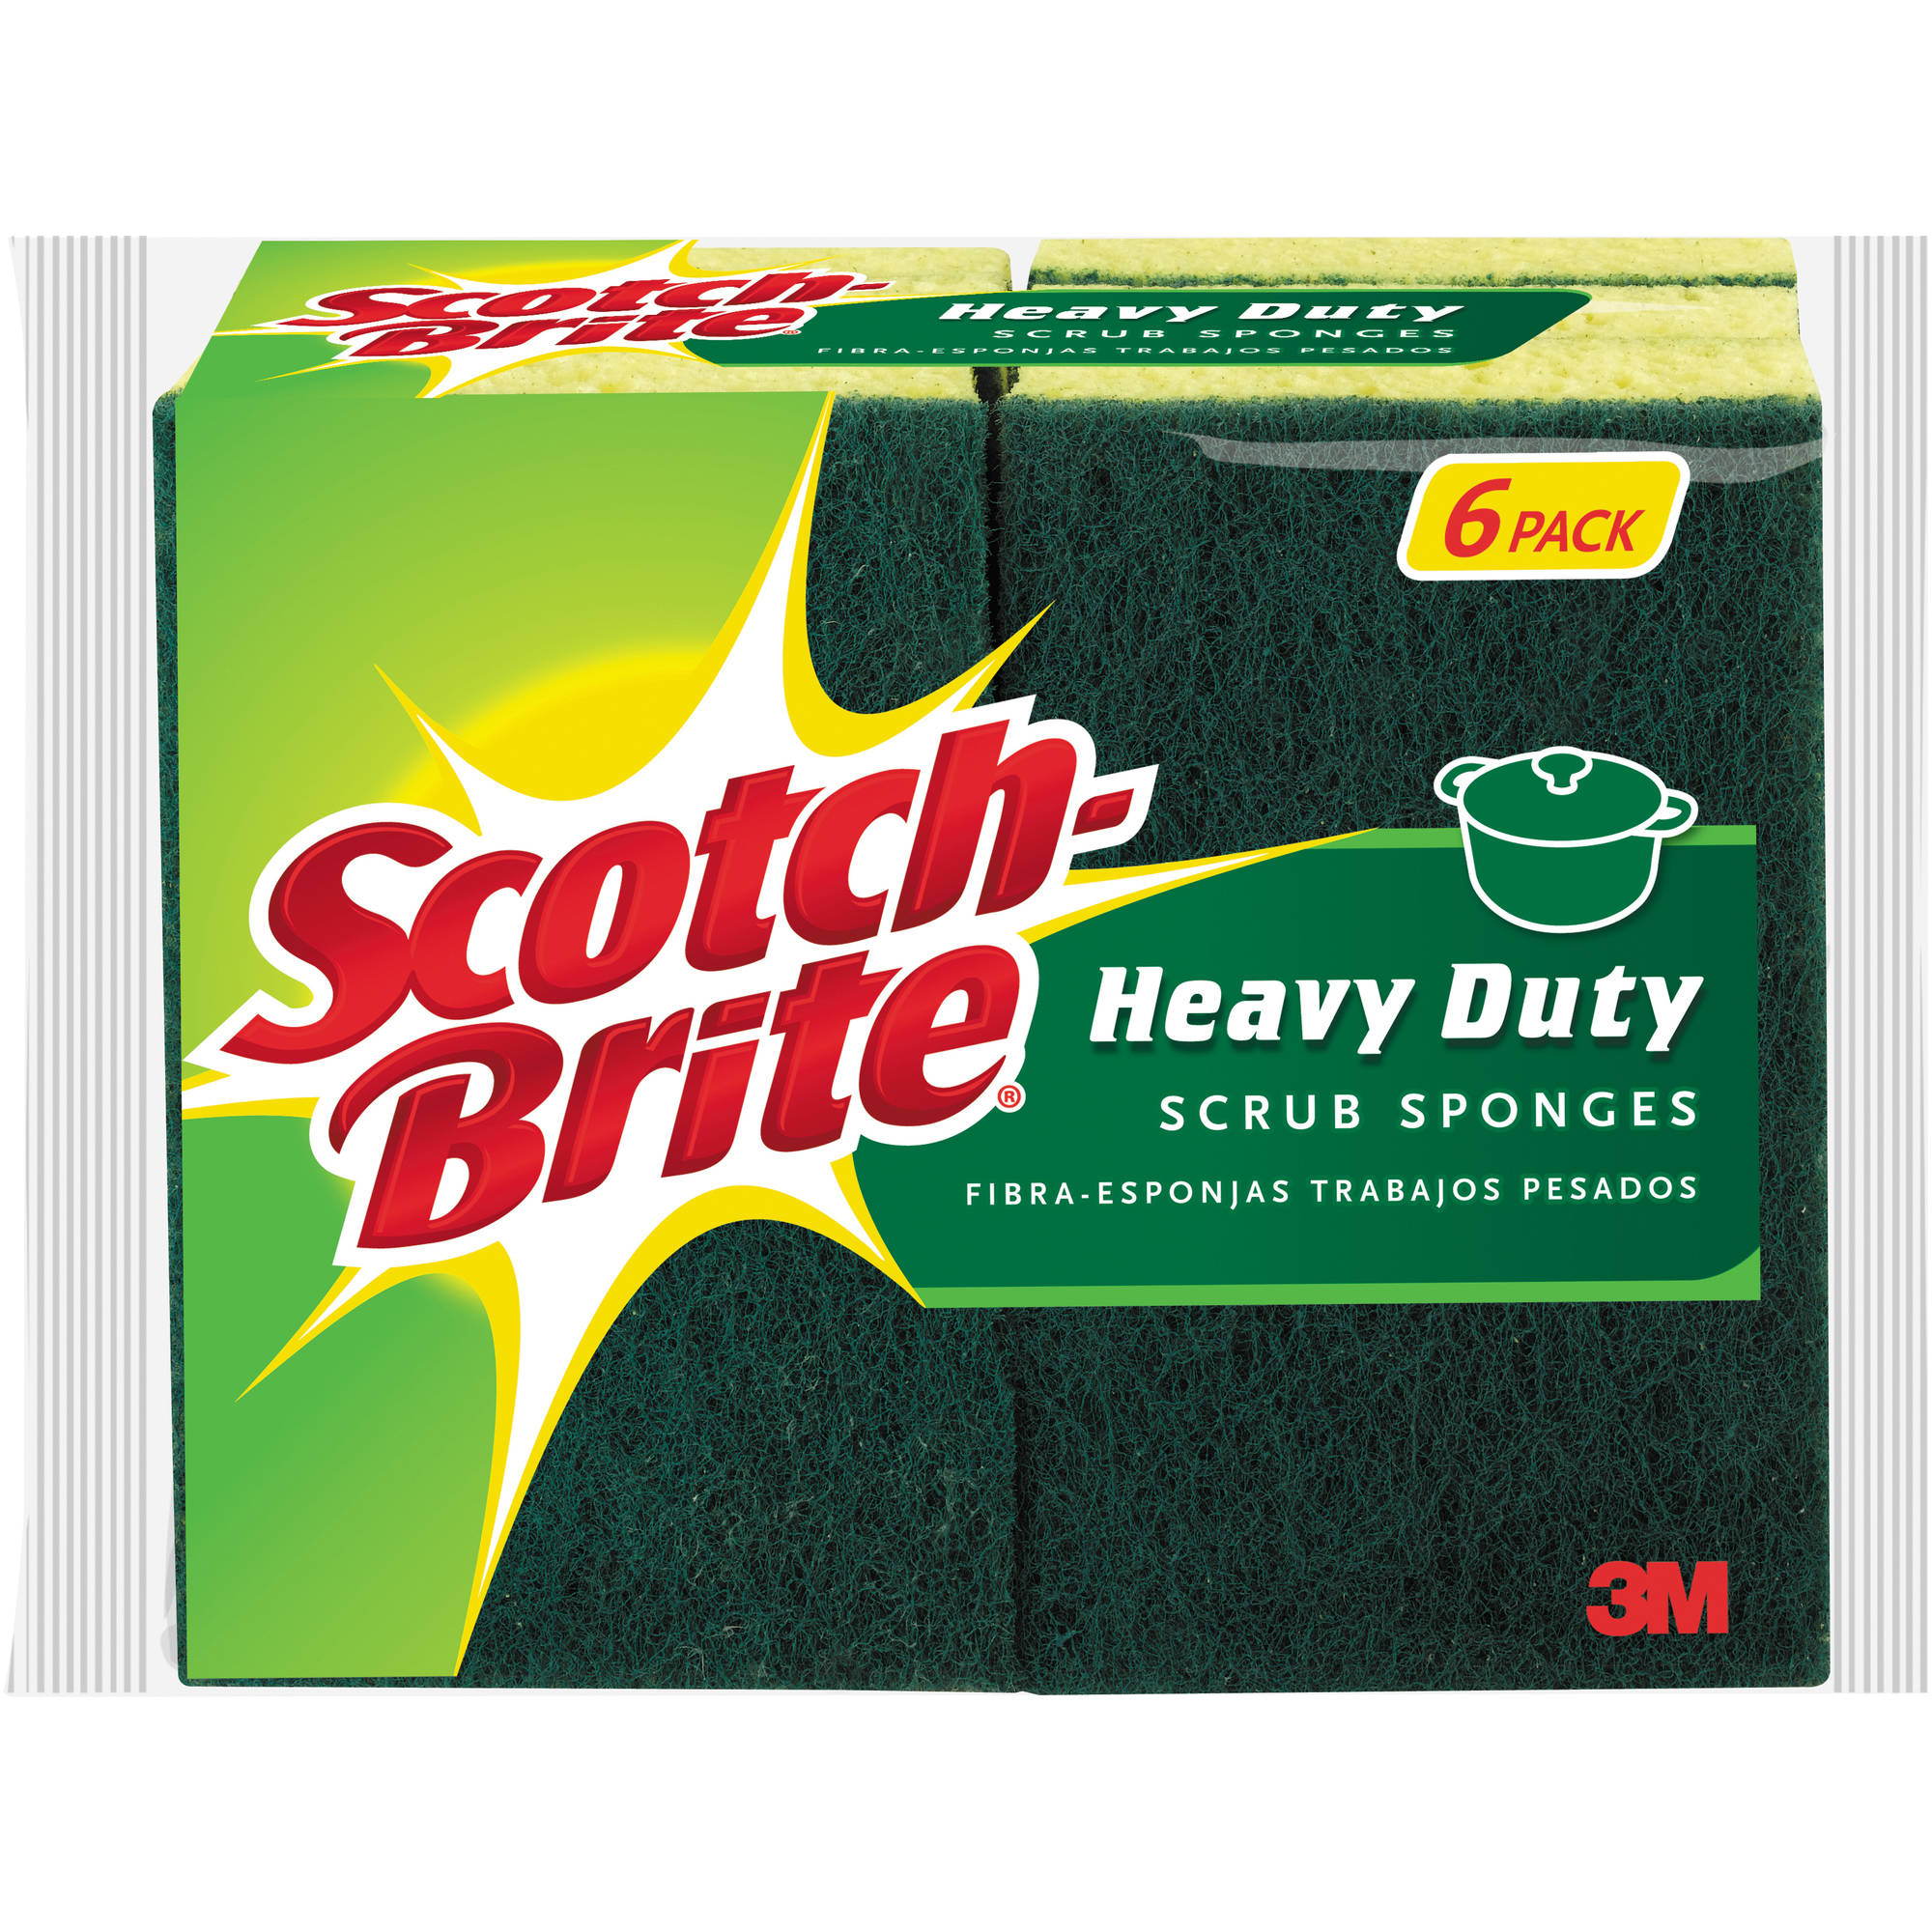 Scotch-Brite Heavy Duty Scrub Sponges, 6 pack